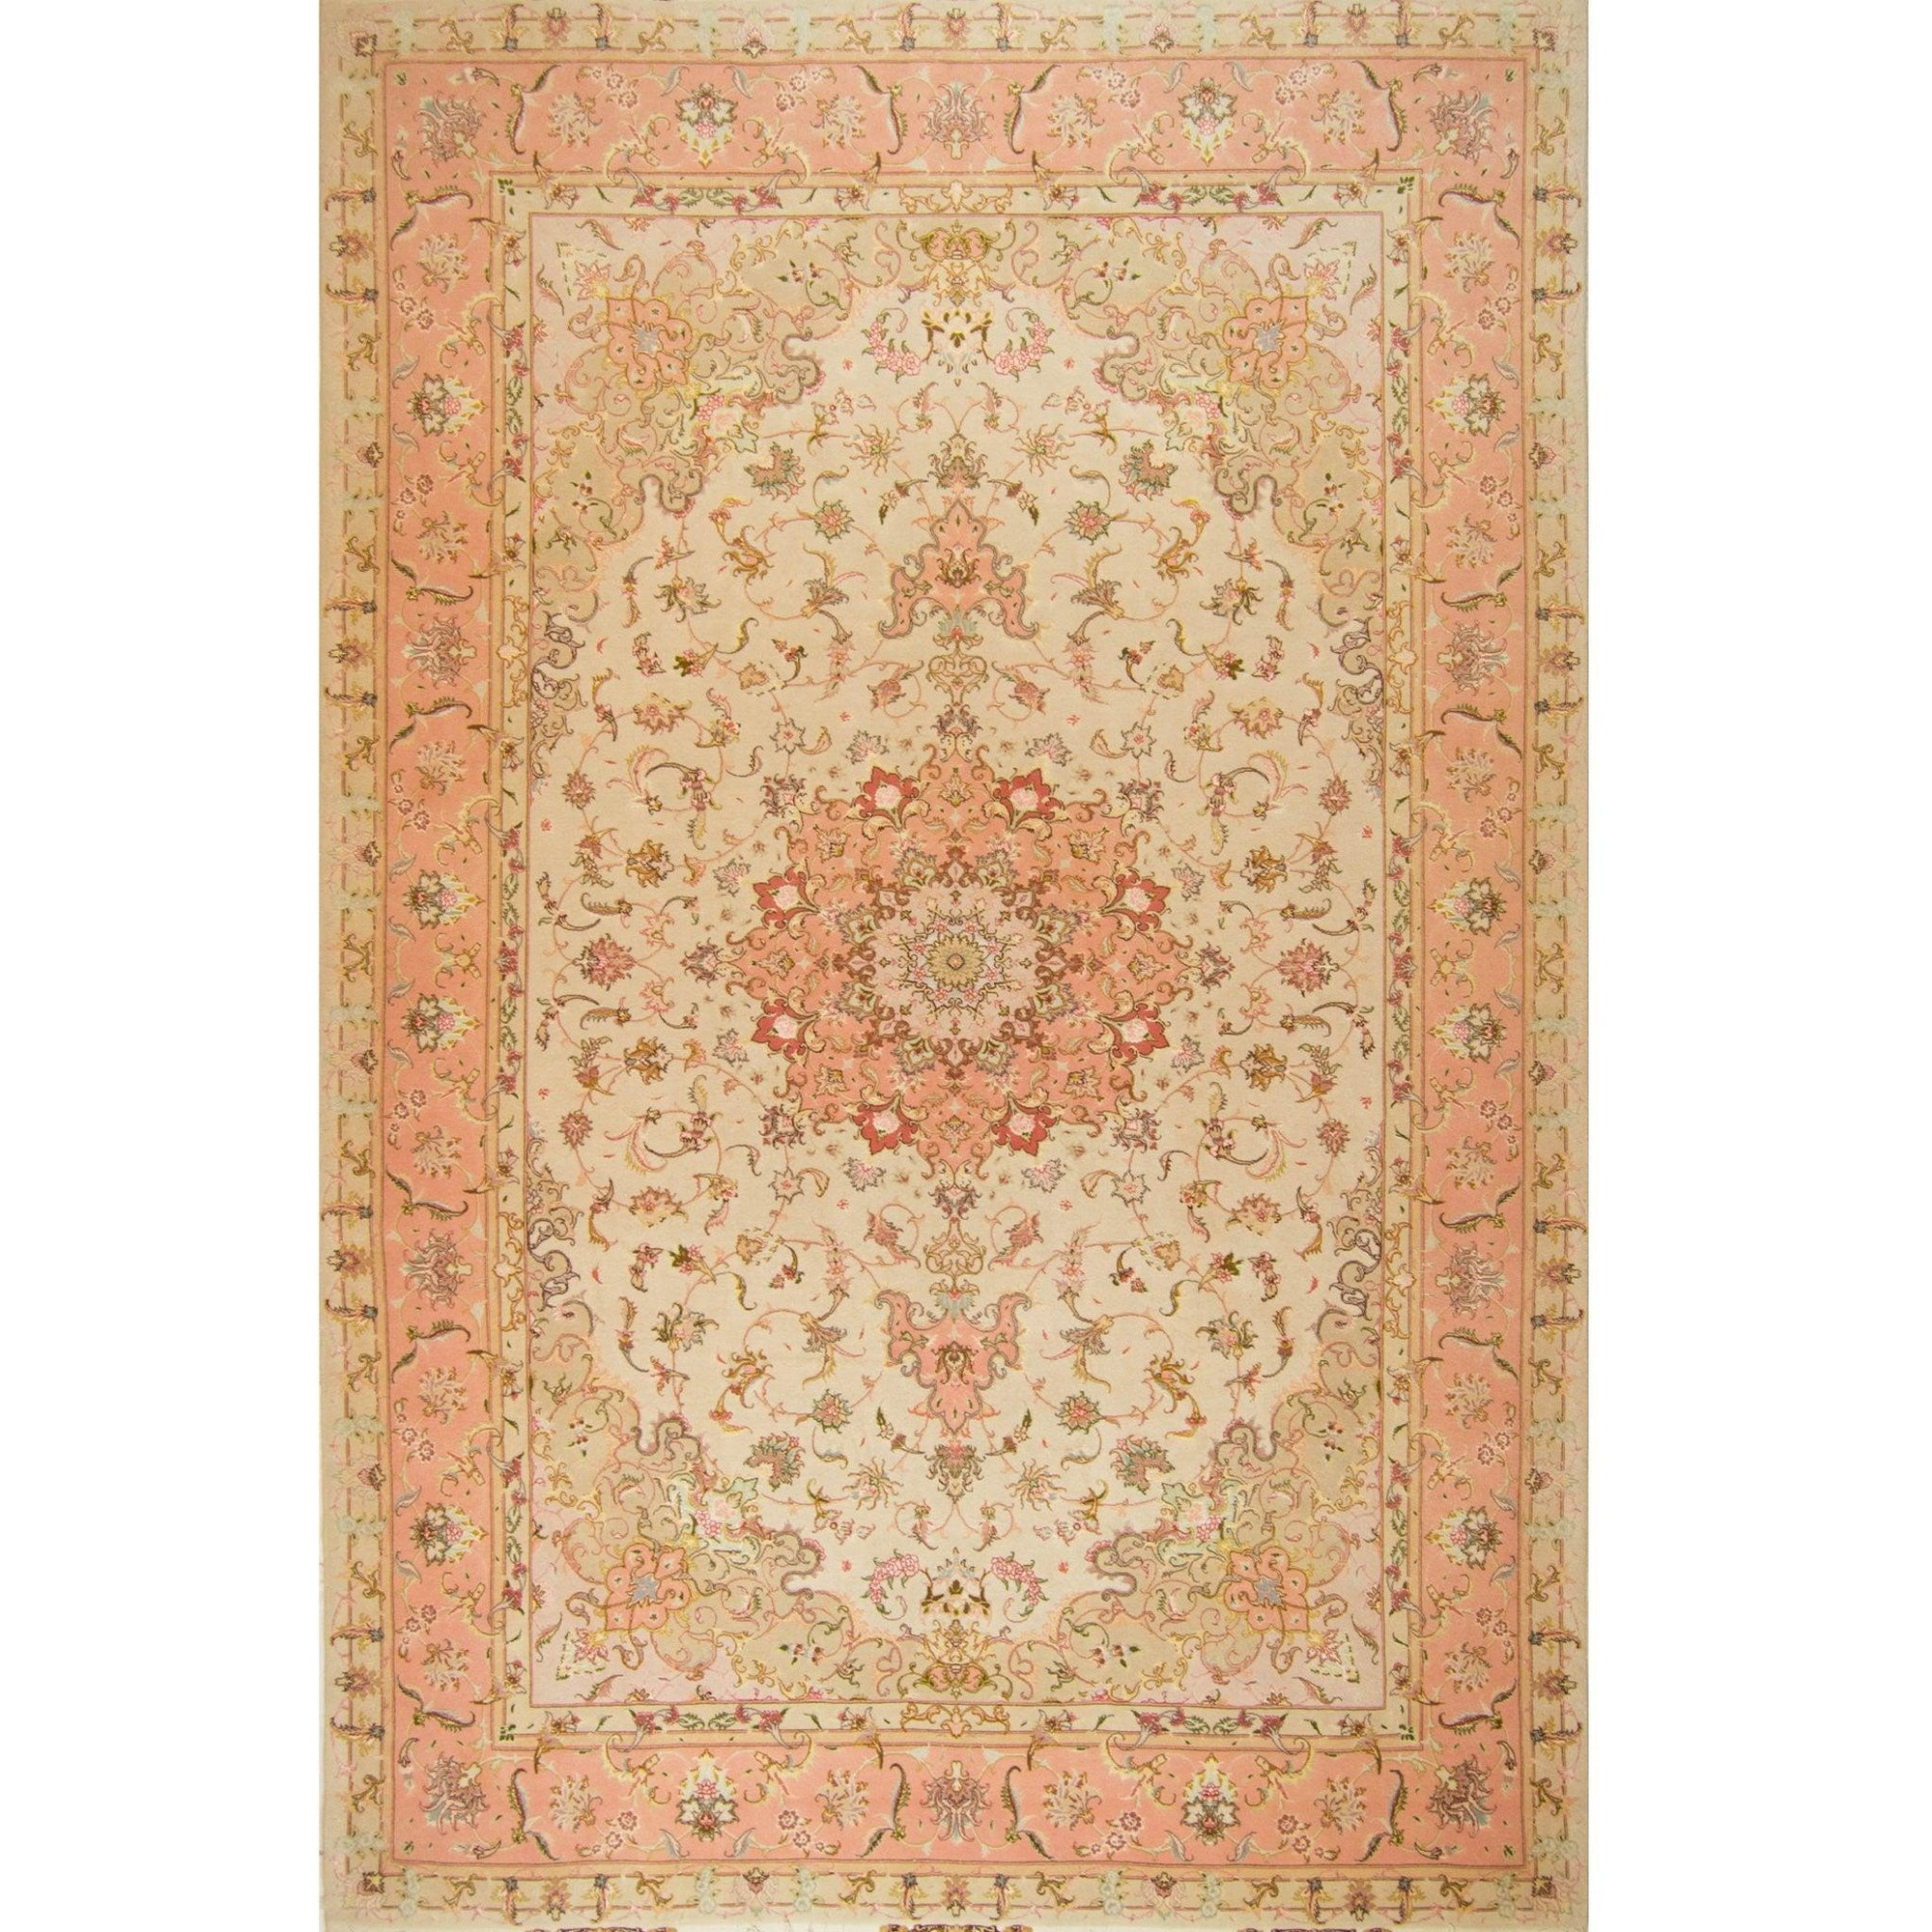 Super Fine Hand-knotted Persian Wool and Silk Tabriz Rug ( SIGNED )202 cm x 310 cm Persian-Rug | House-of-Haghi | NewMarket | Auckland | NZ | Handmade Persian Rugs | Hand Knotted Persian Rugs